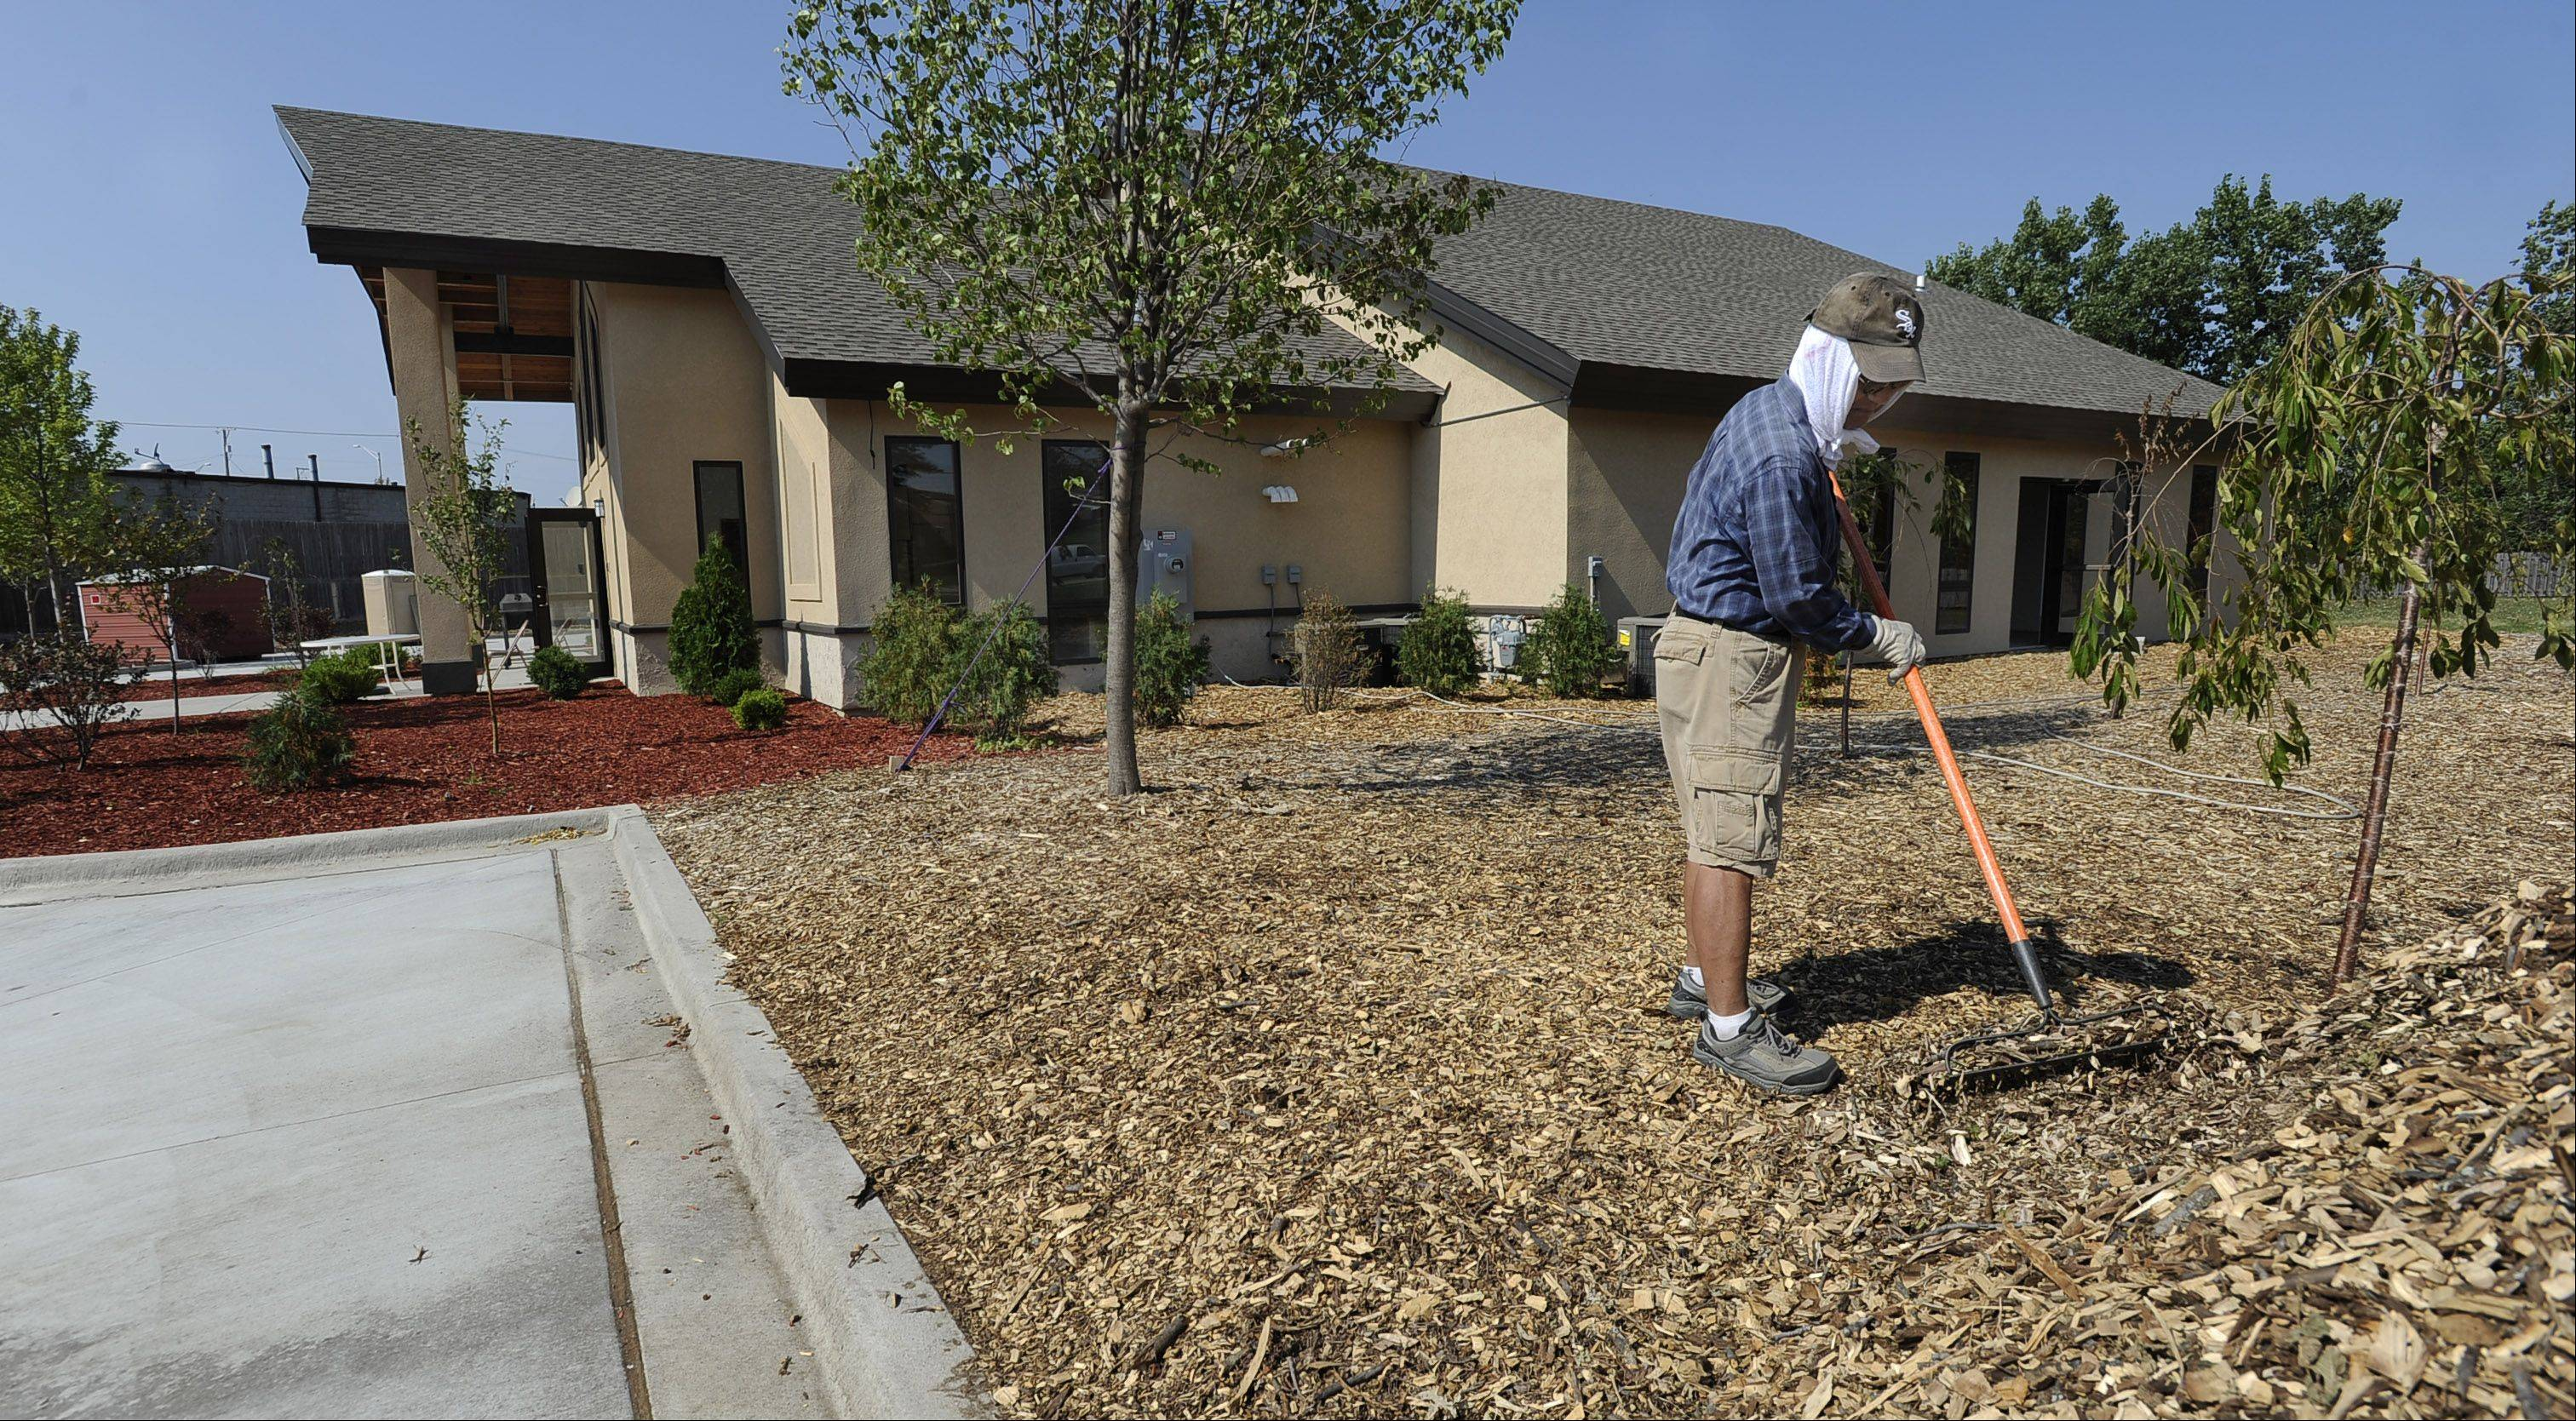 Mic Miyamoto of Buffalo Grove, a member of the Chicago Japanese Mission Church in Arlington Heights, spreads mulch around the church. He's one of many volunteers who are bringing the church closer to finally opening late this year after a three-year effort to build it.